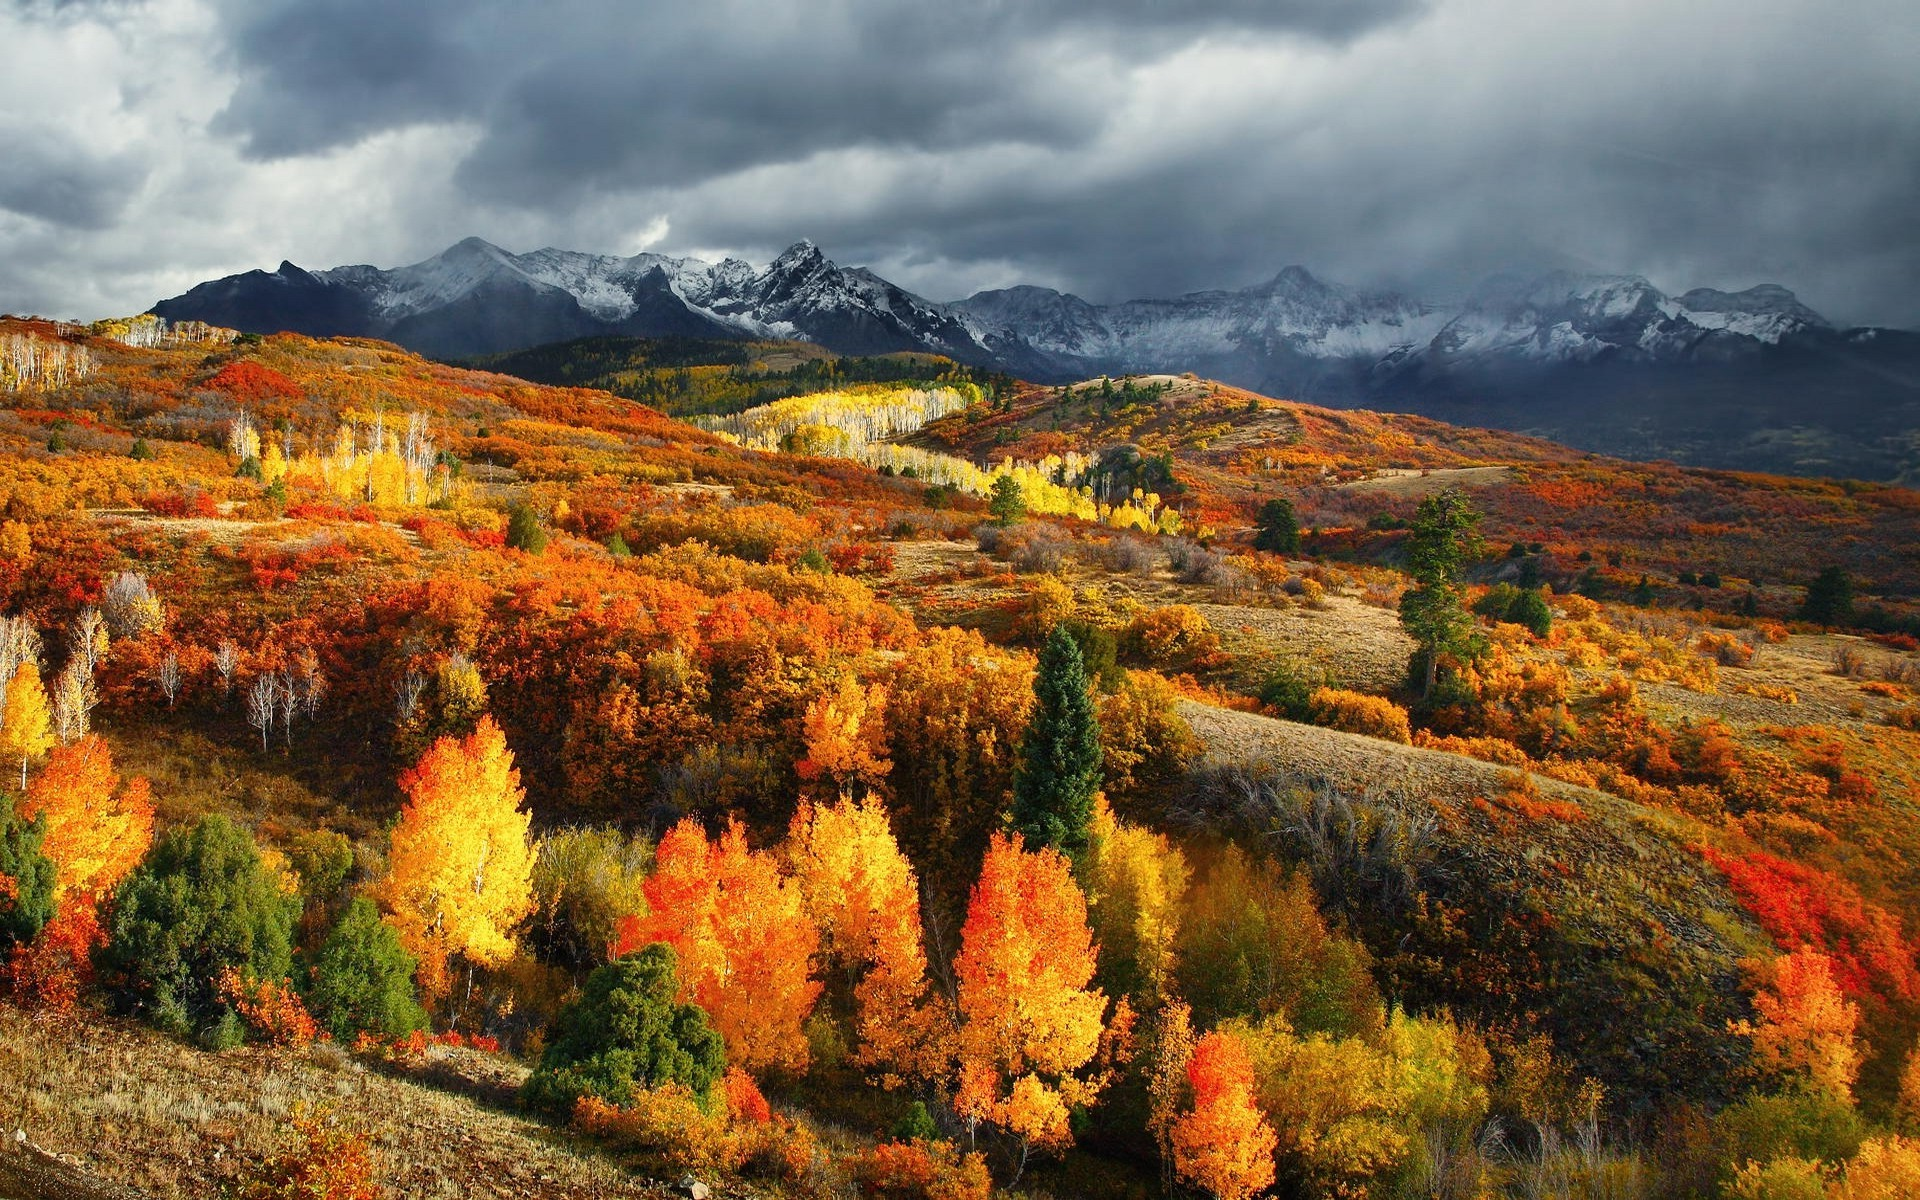 nature, Landscape, Fall, Forest, Mountain, Colorado, Snowy Peak, Clouds,  Colorful Wallpapers HD / Desktop and Mobile Backgrounds